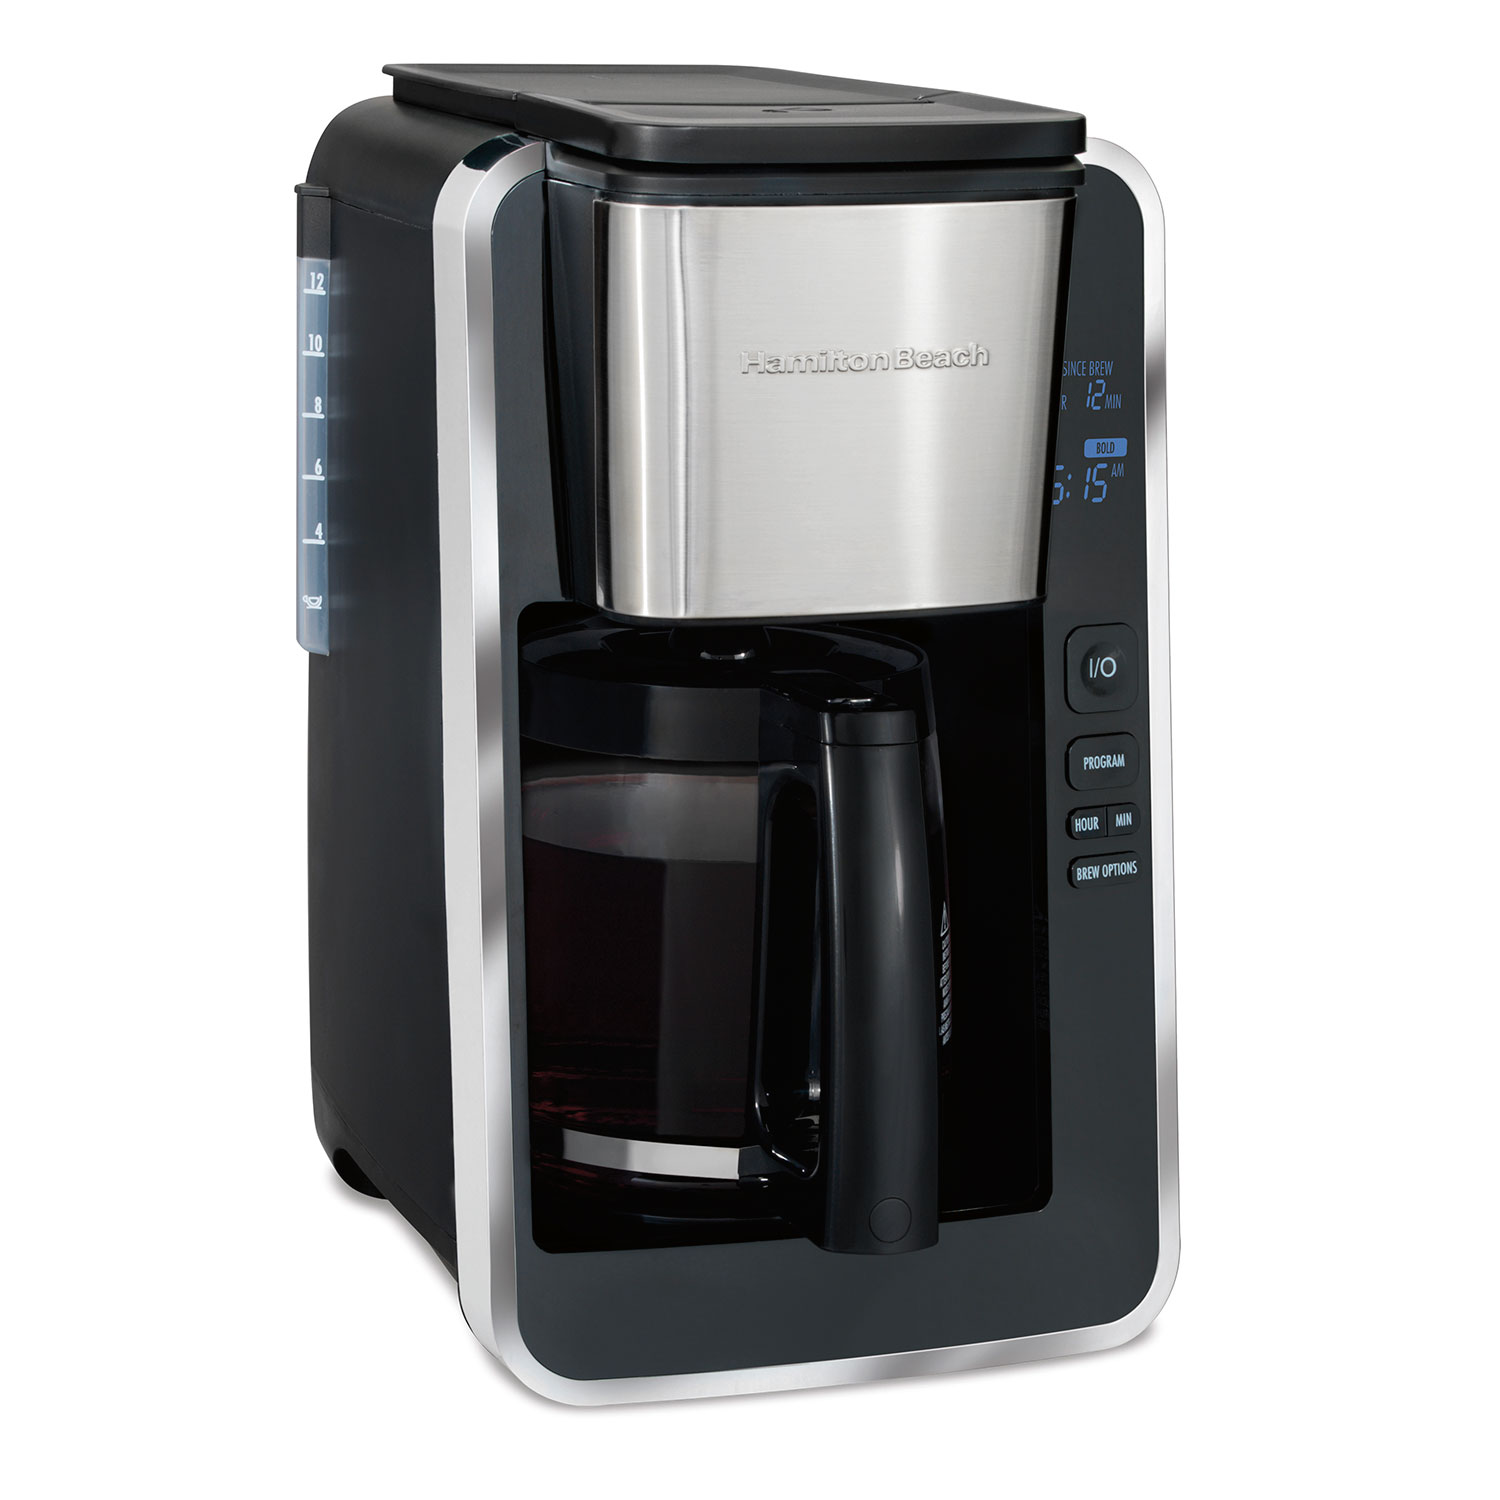 FrontFill™ Deluxe 12 Cup Programmable Coffee Maker Black & Stainless (46320)